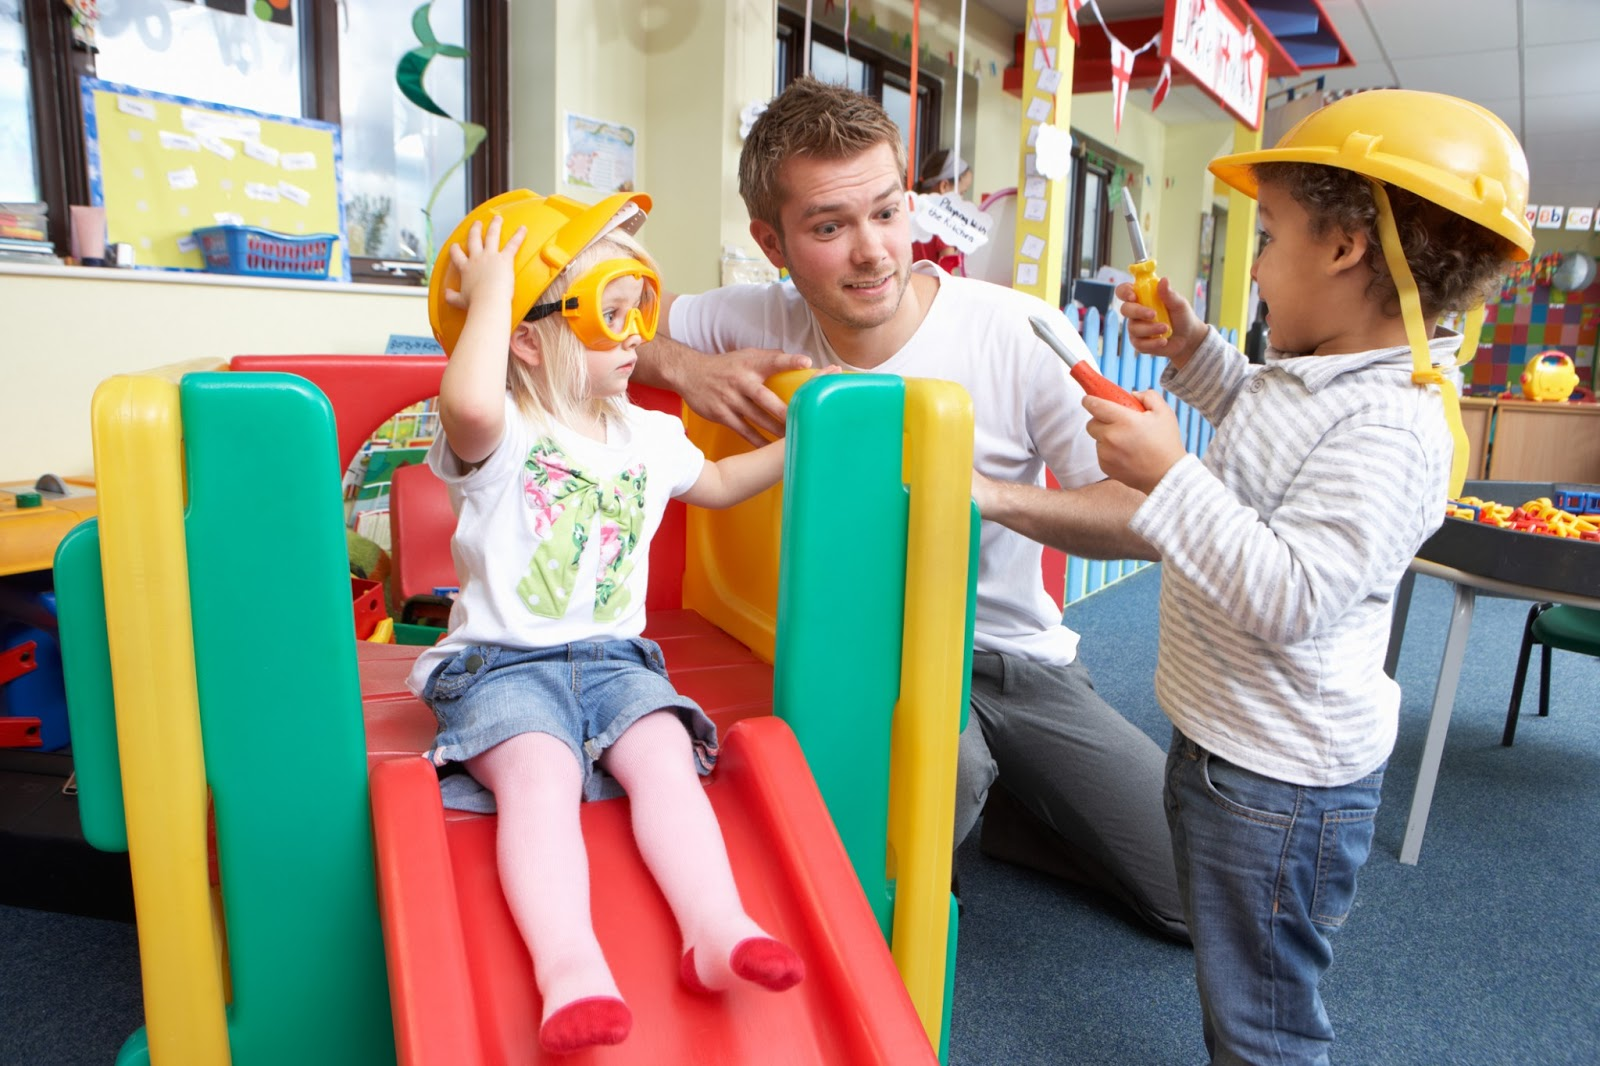 Child Care toughest undergraduate degrees